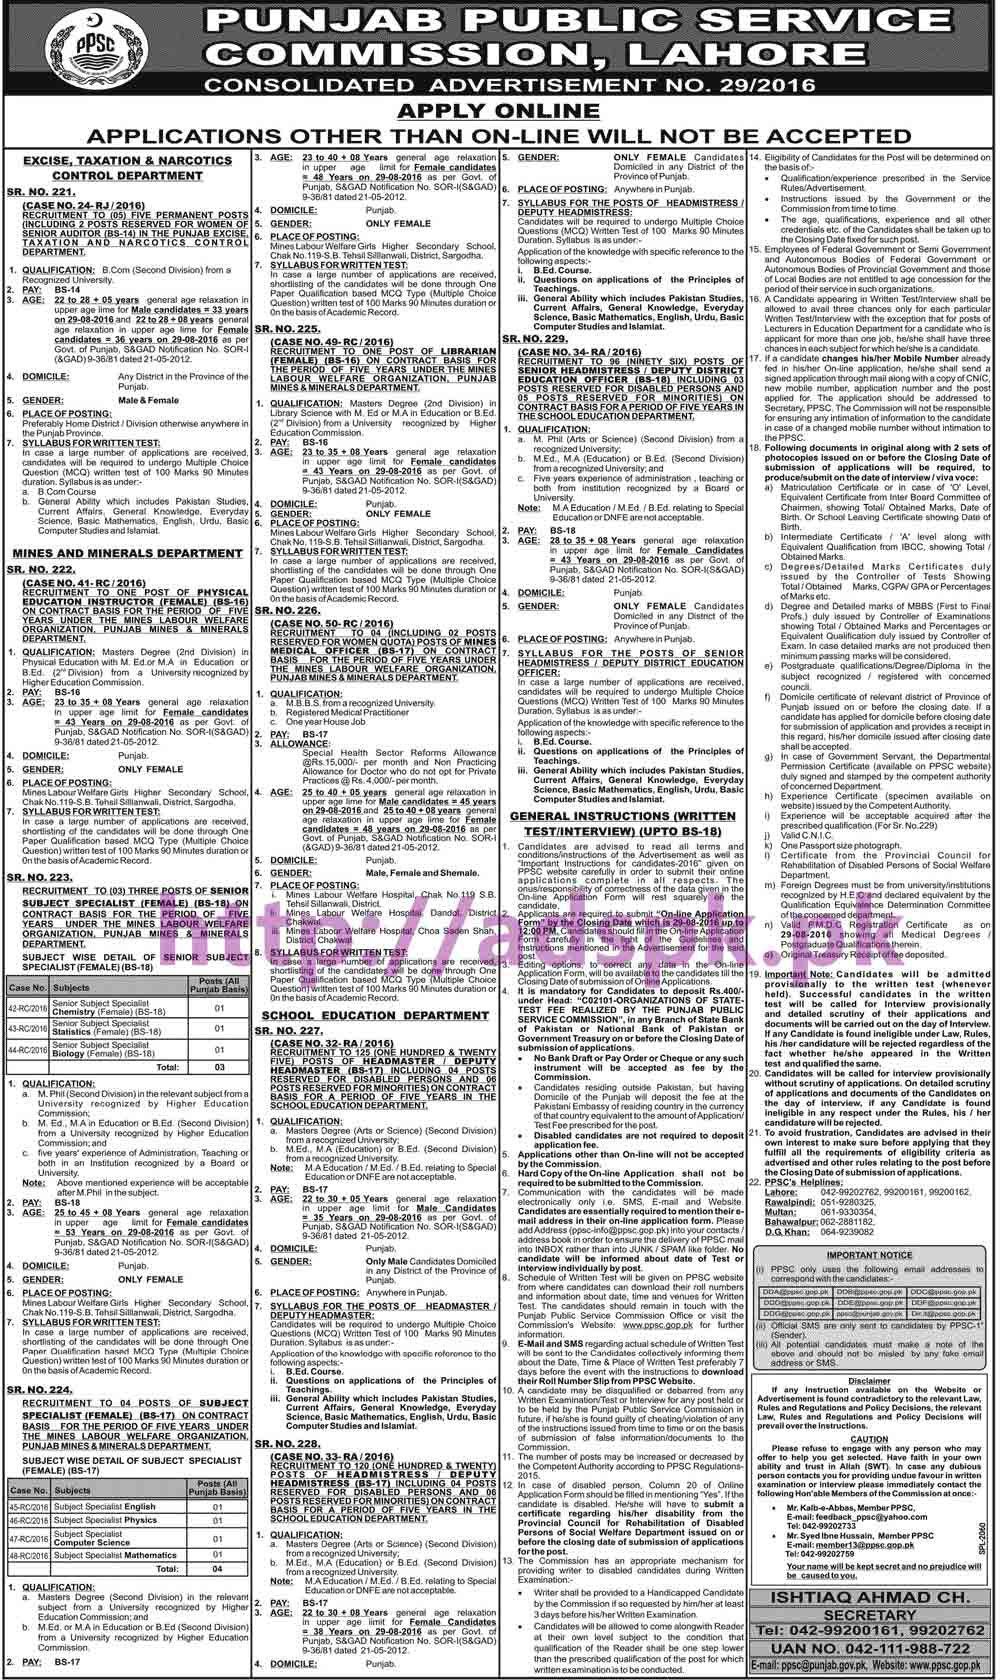 PPSC New Career Jobs Ad No 29 2016 Test Syllabus Jobs For